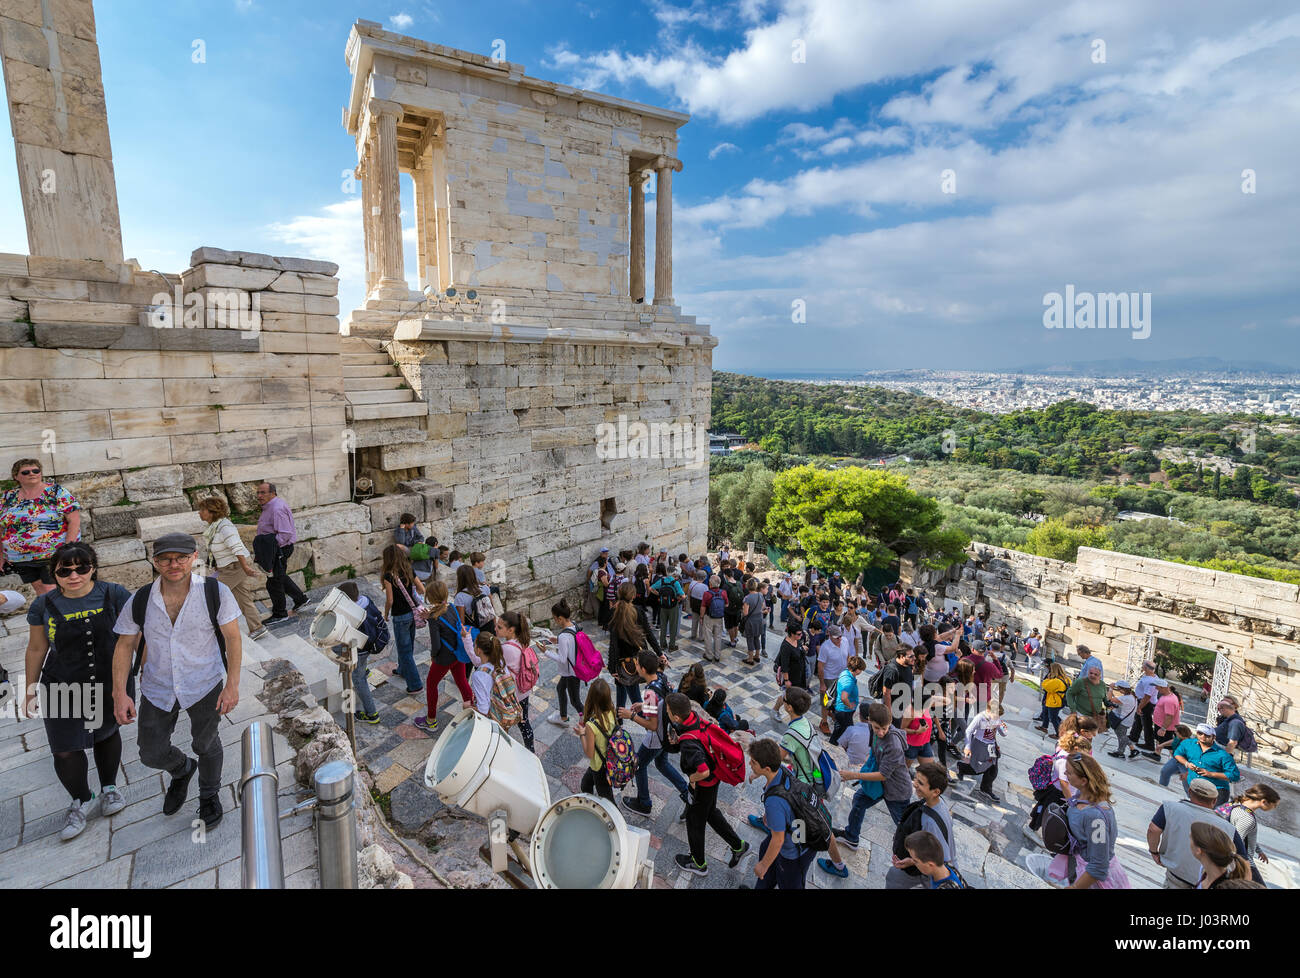 Tourists on a stairs in front of gateway called Propylaea, entrance to the top of Acropolis of Athens city, Greece. Stock Photo